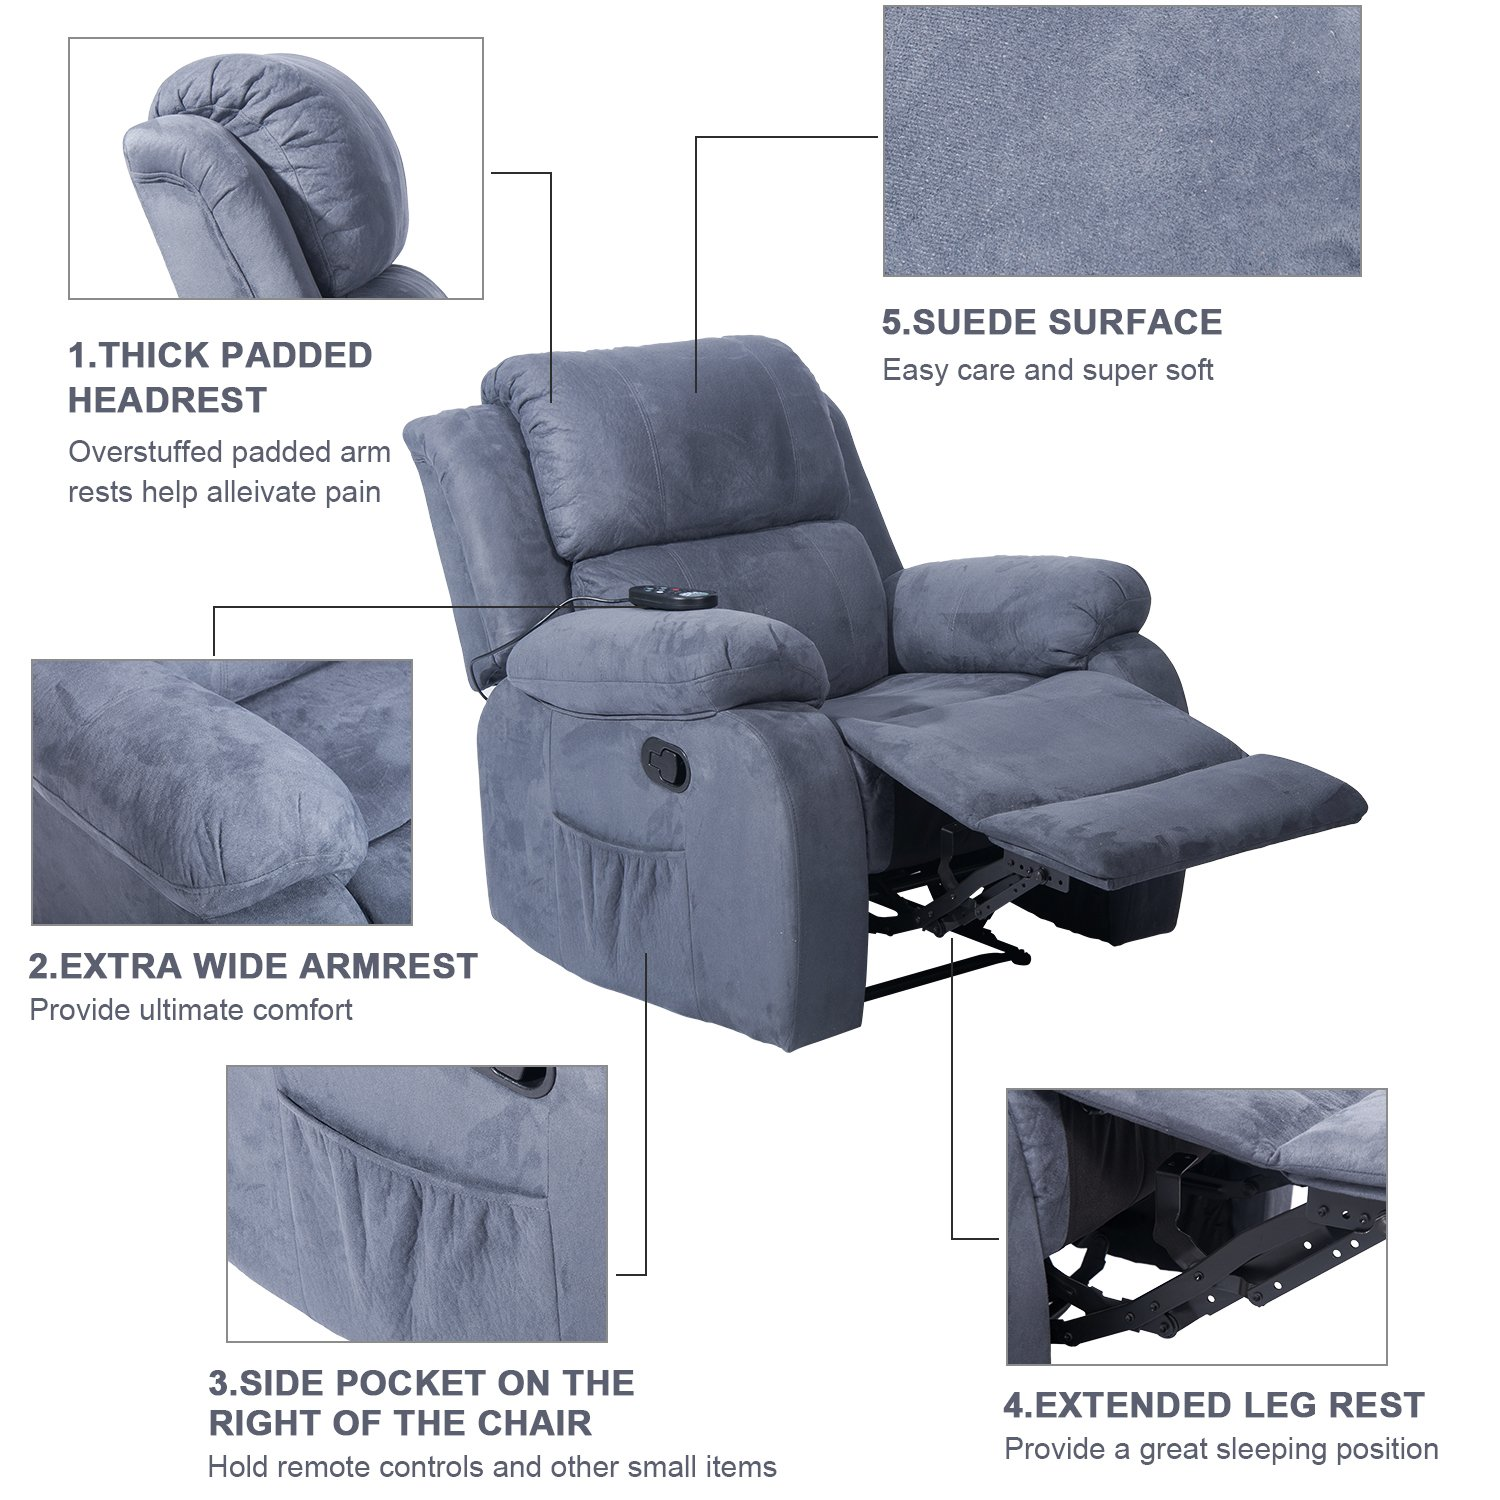 Merax Suede Heated Massage Recliner Sofa Chair Ergonomic Lounge with 8 Vibration Motors, Grey by Merax (Image #2)